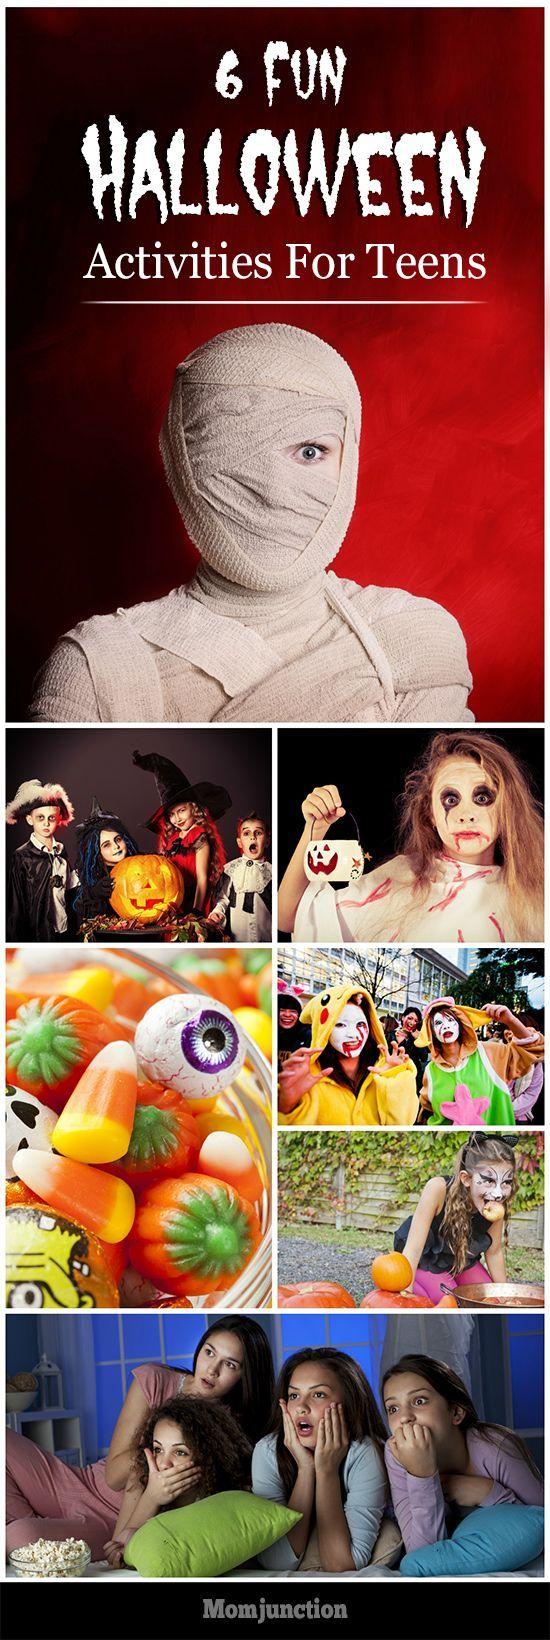 6 Fun Halloween Activities For Teens: Here is our list of 6 great Halloween activities for teenagers.